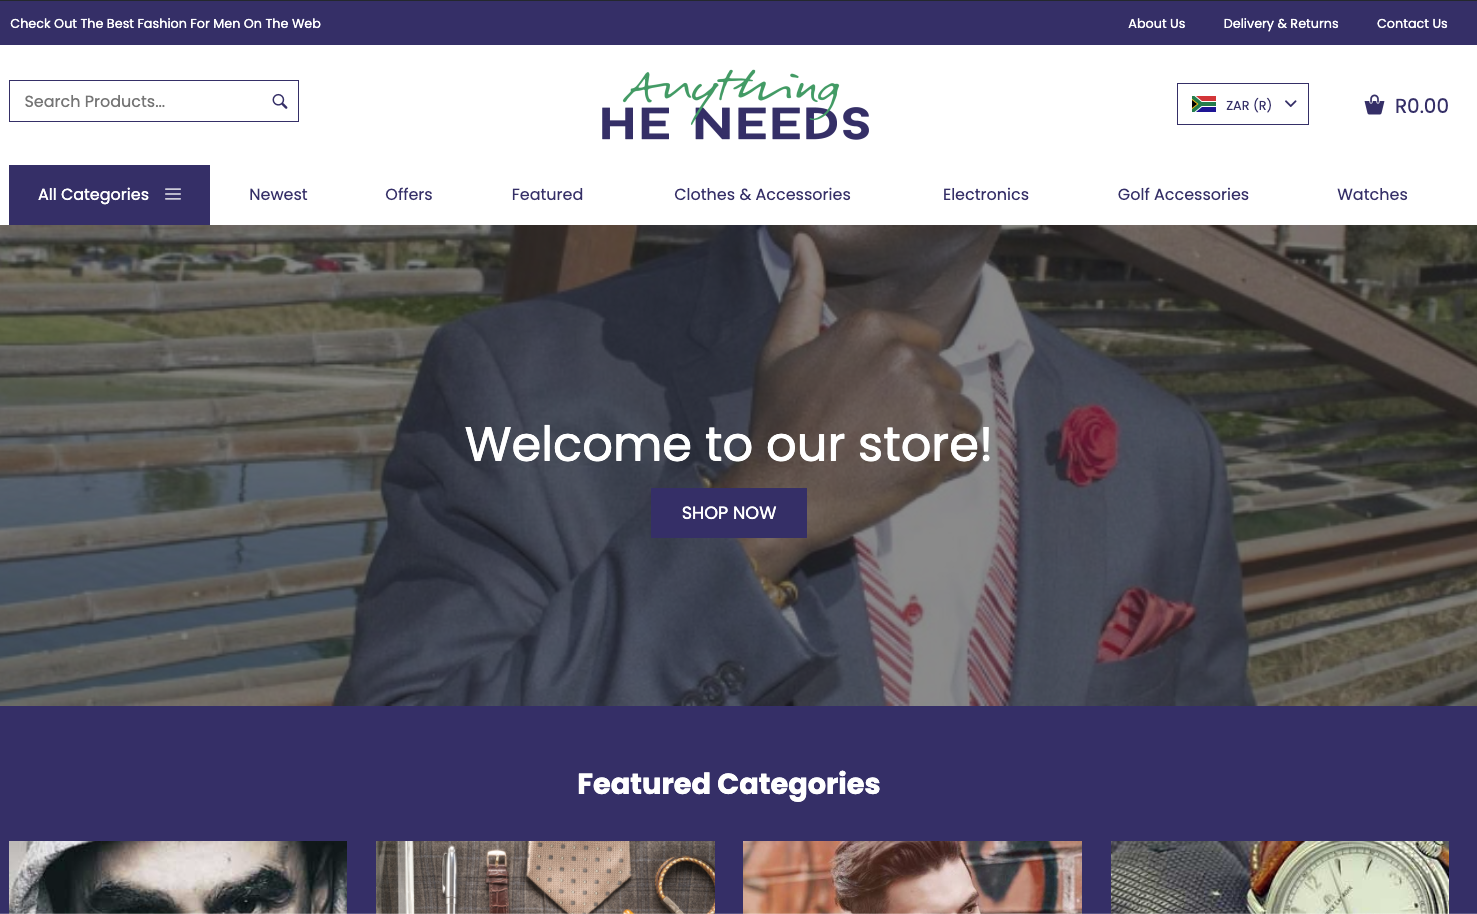 START YOUR OWN BUSINESS TODAY WITH A ONLINE STORE / TRADE IN 24 HOURS